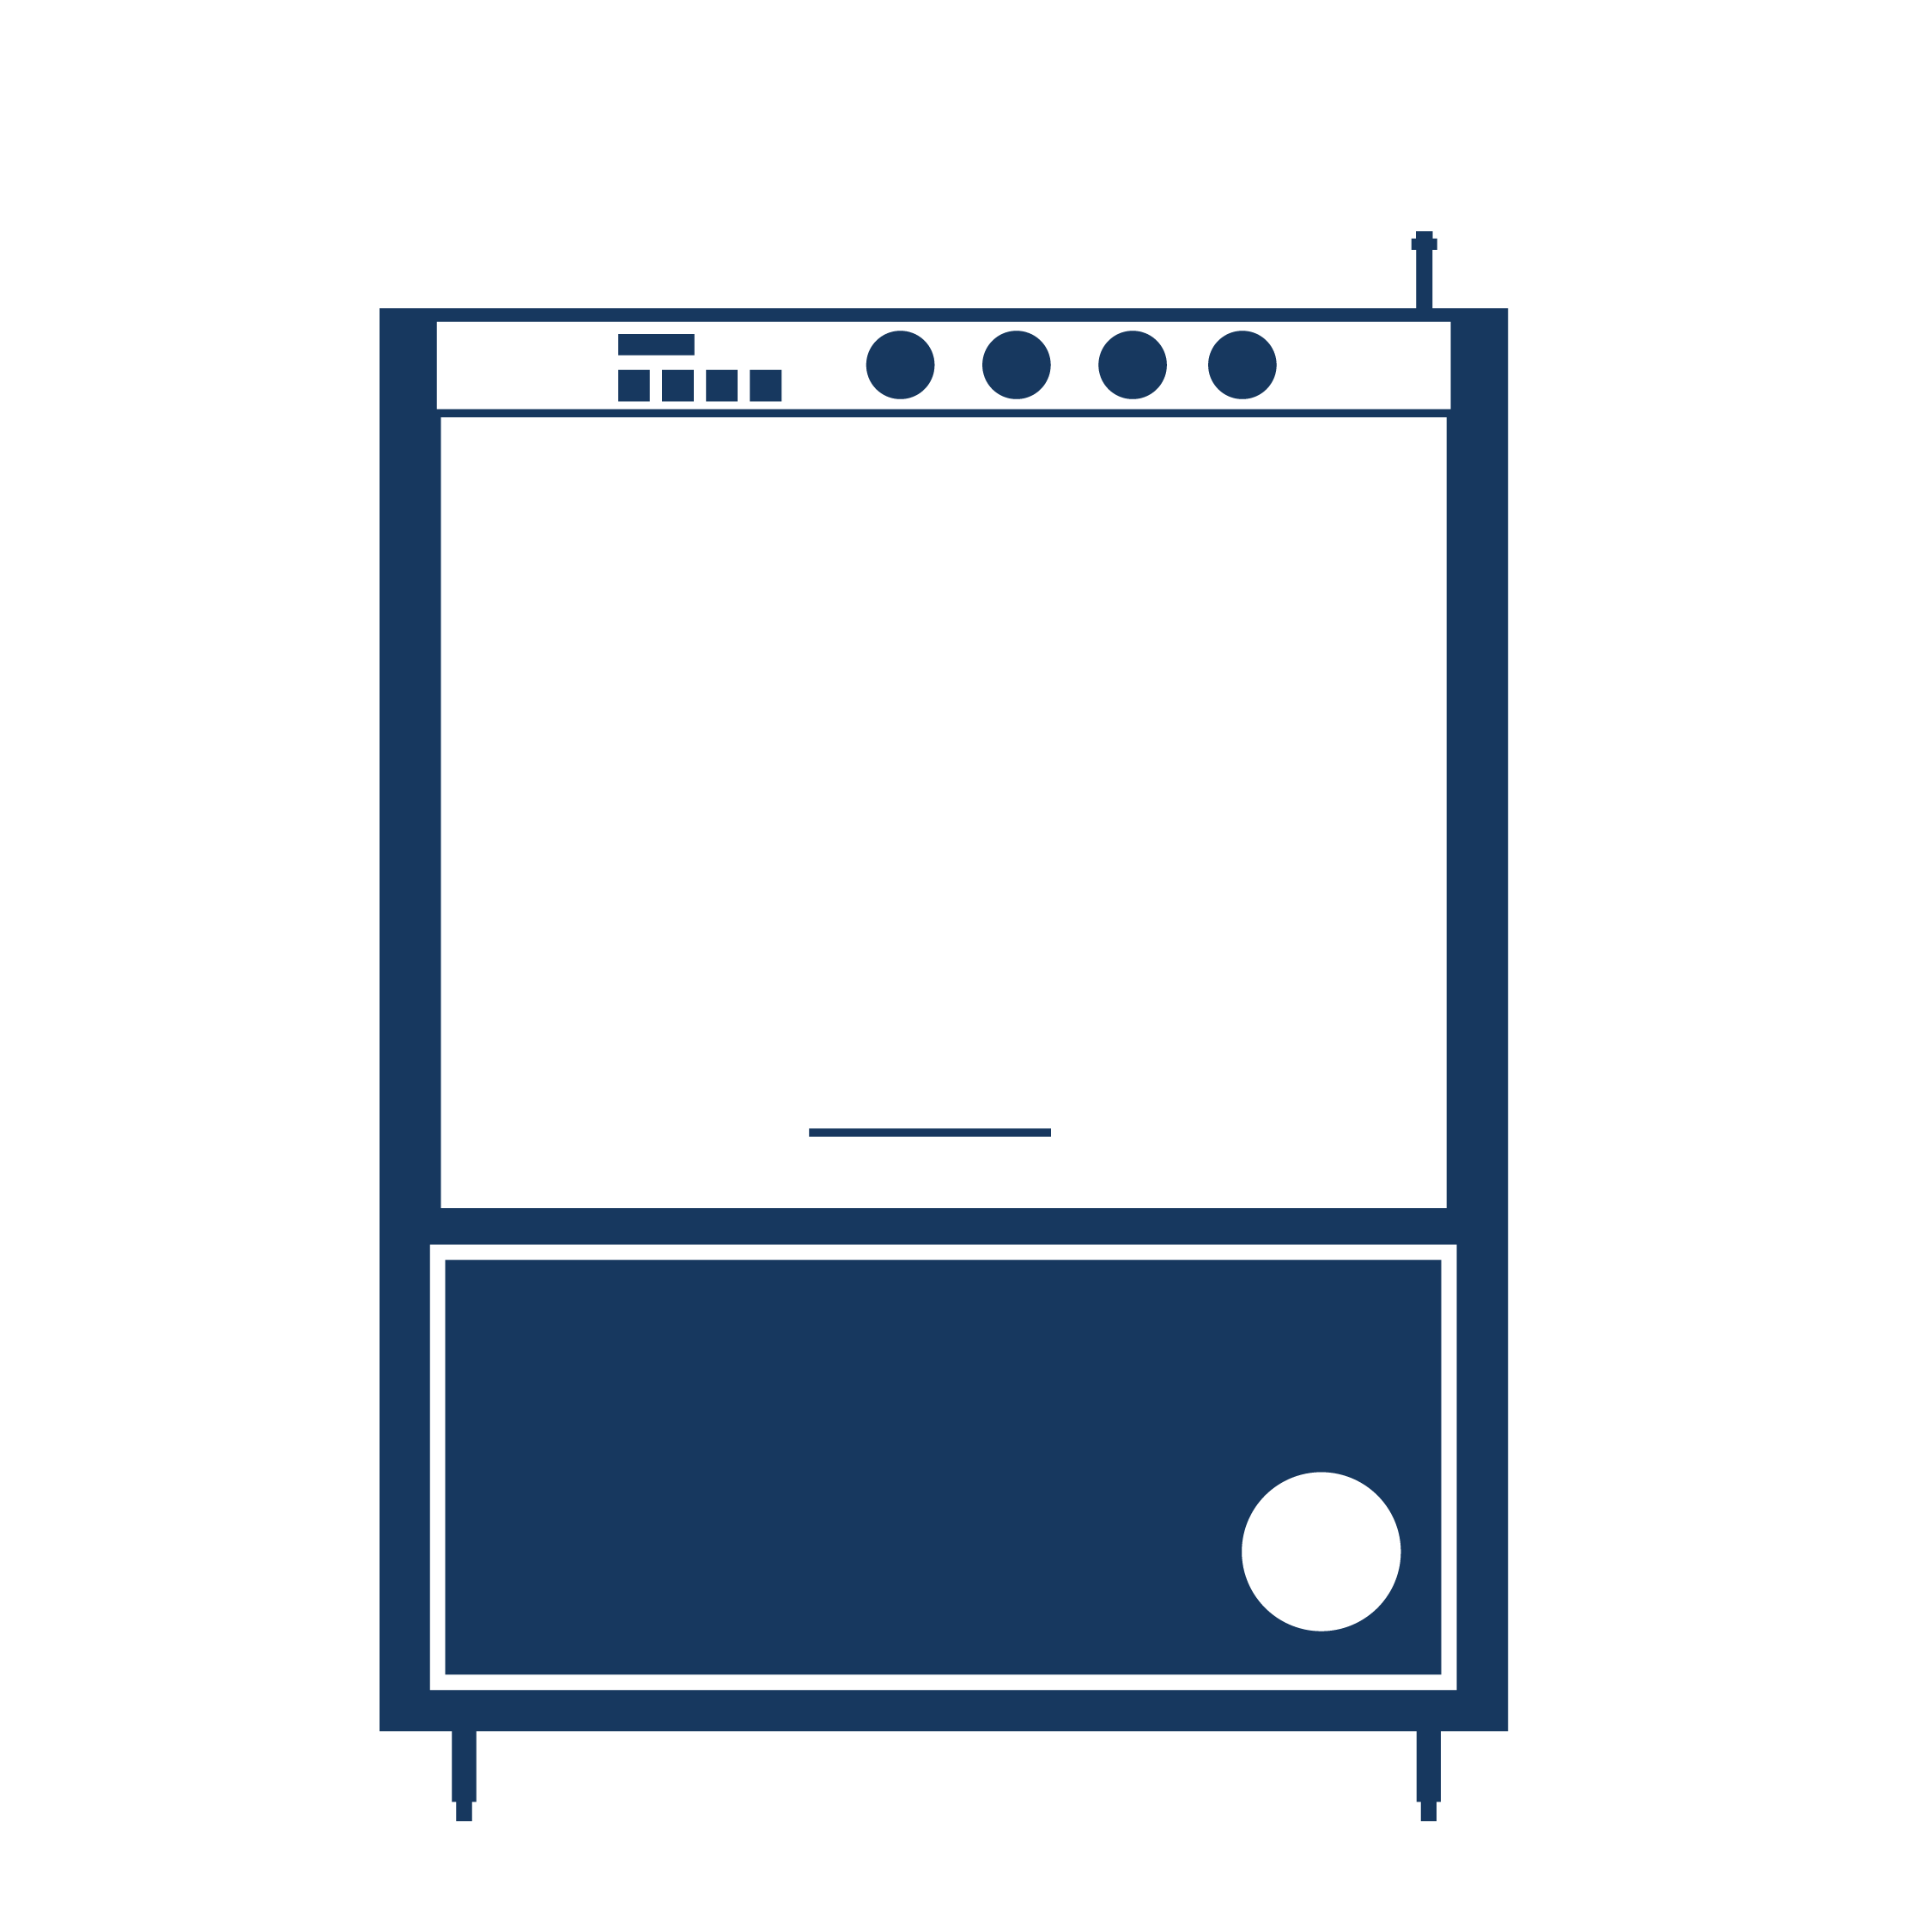 Commercial Industrial Washers Commercial Cleaning Equipment Commercial Dishwasher Manufacturer